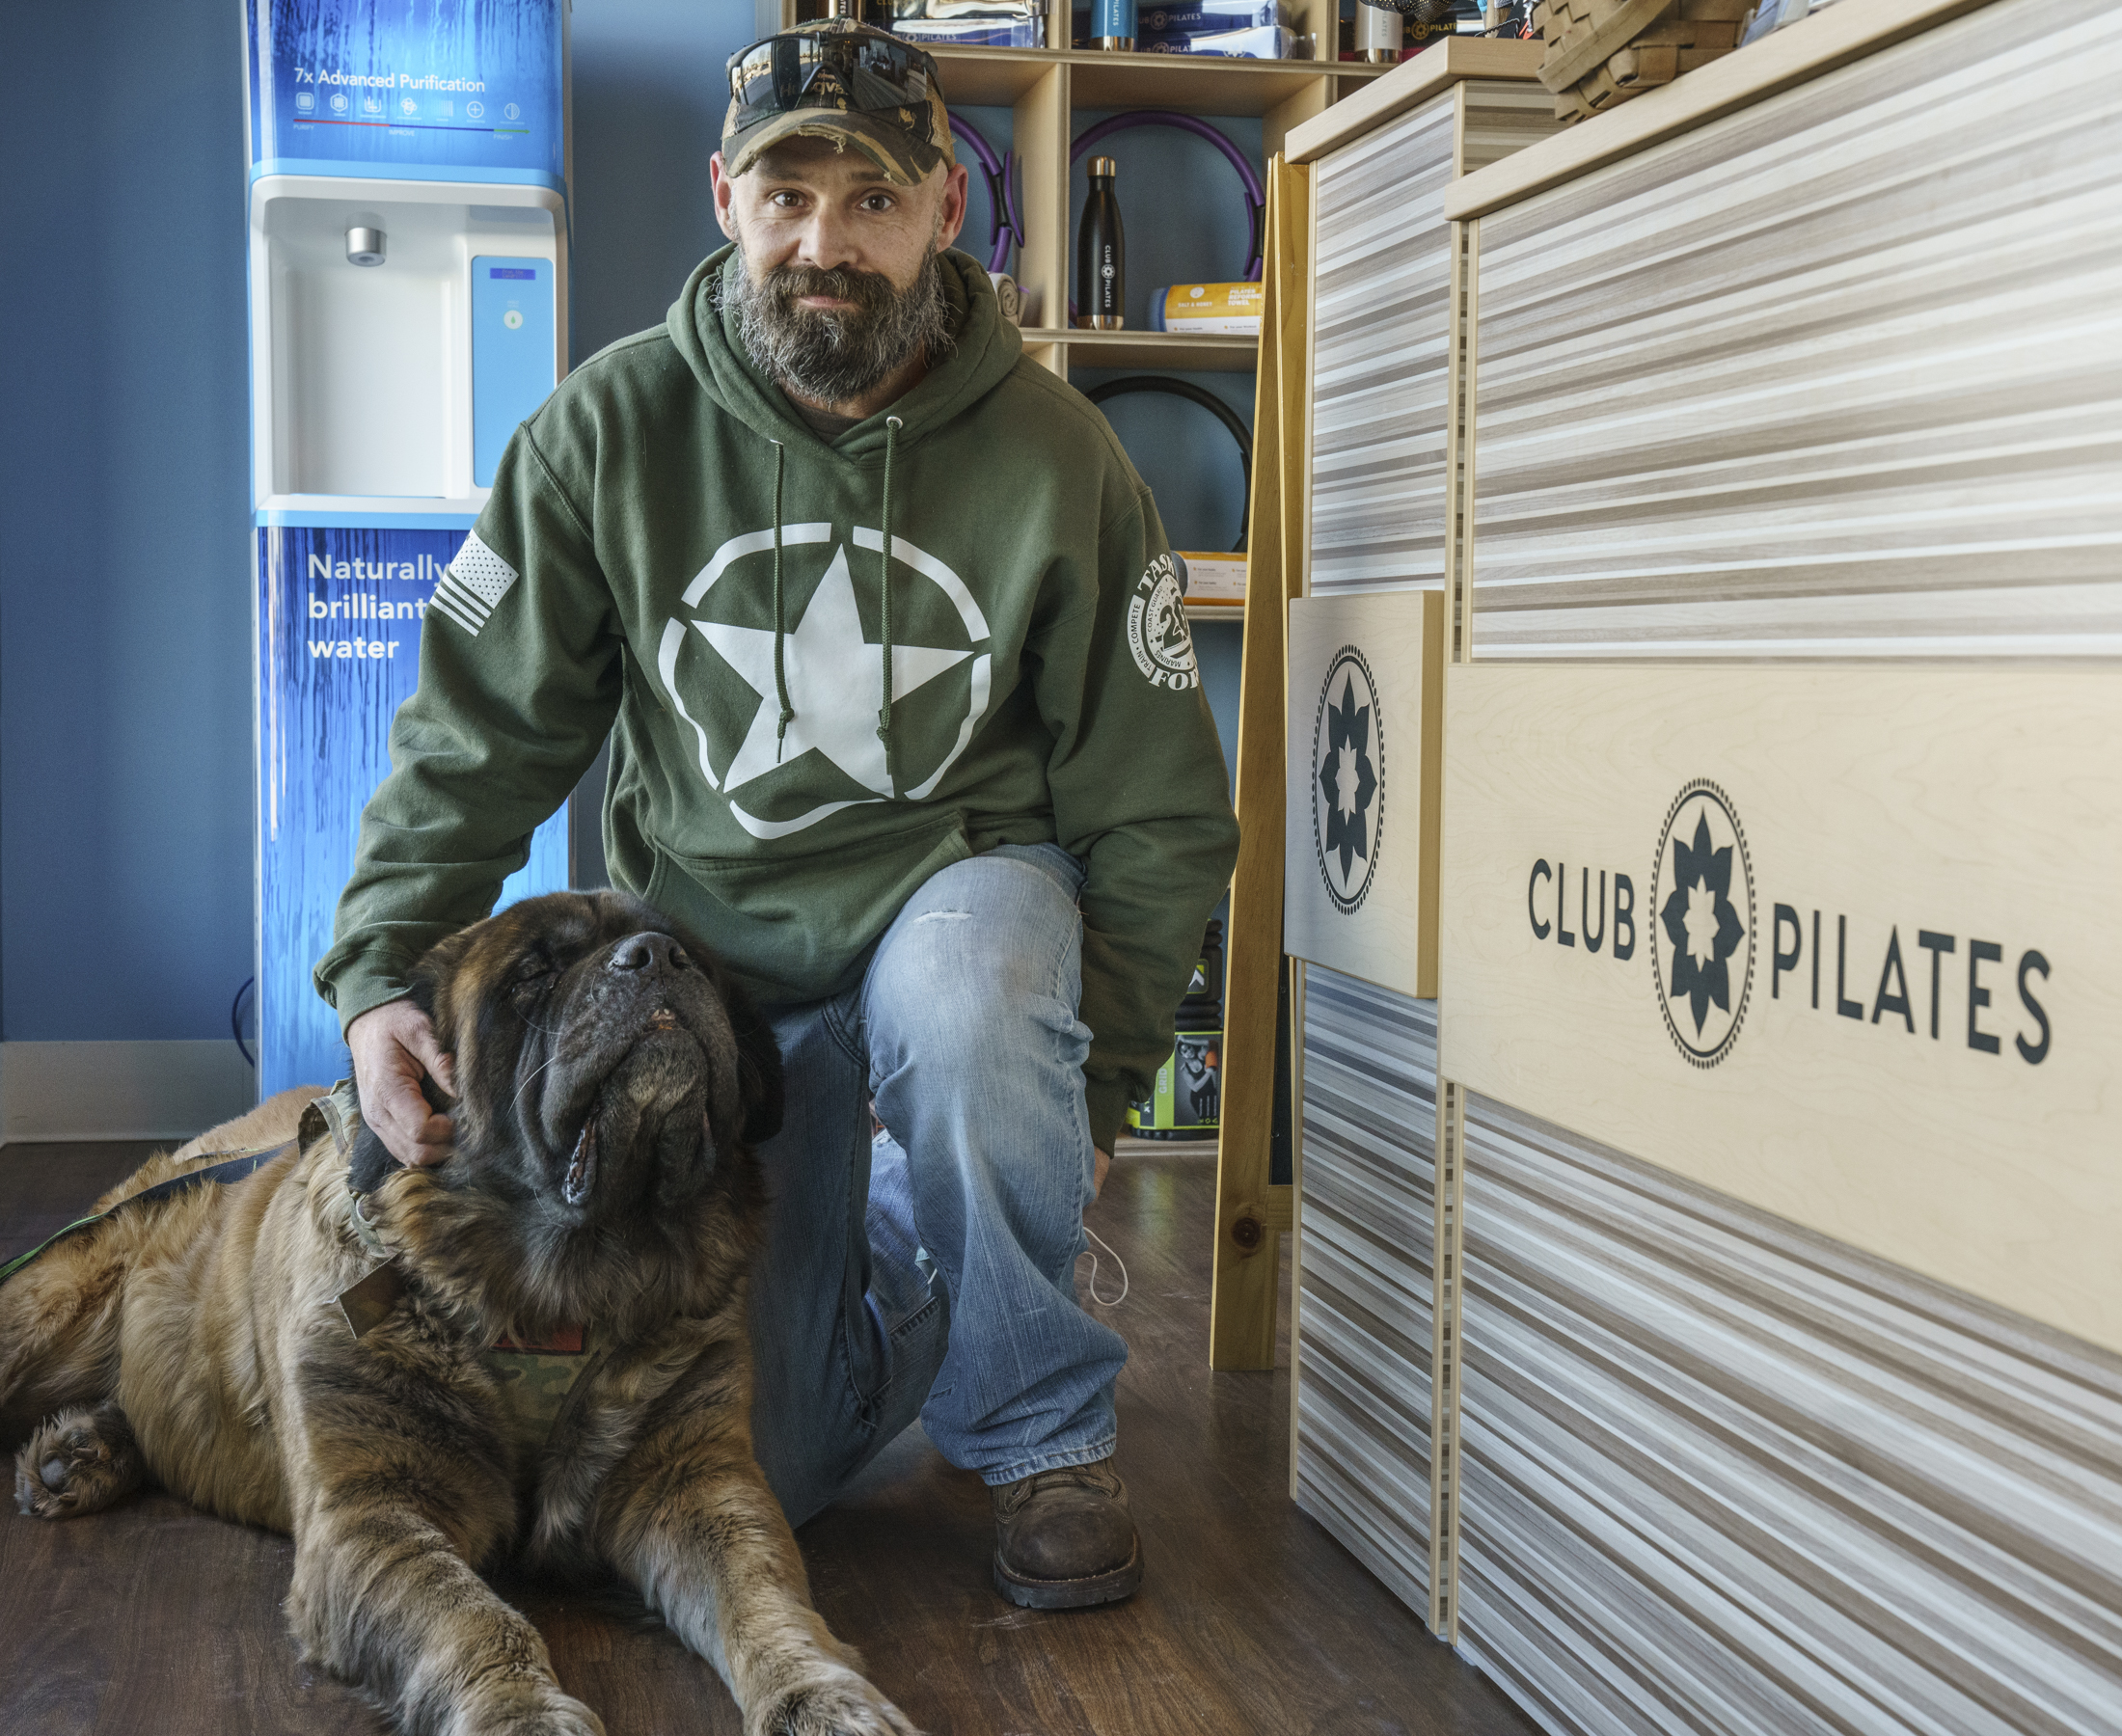 This Veteran and His Pup Are Club Pilates Members - Read Their Story